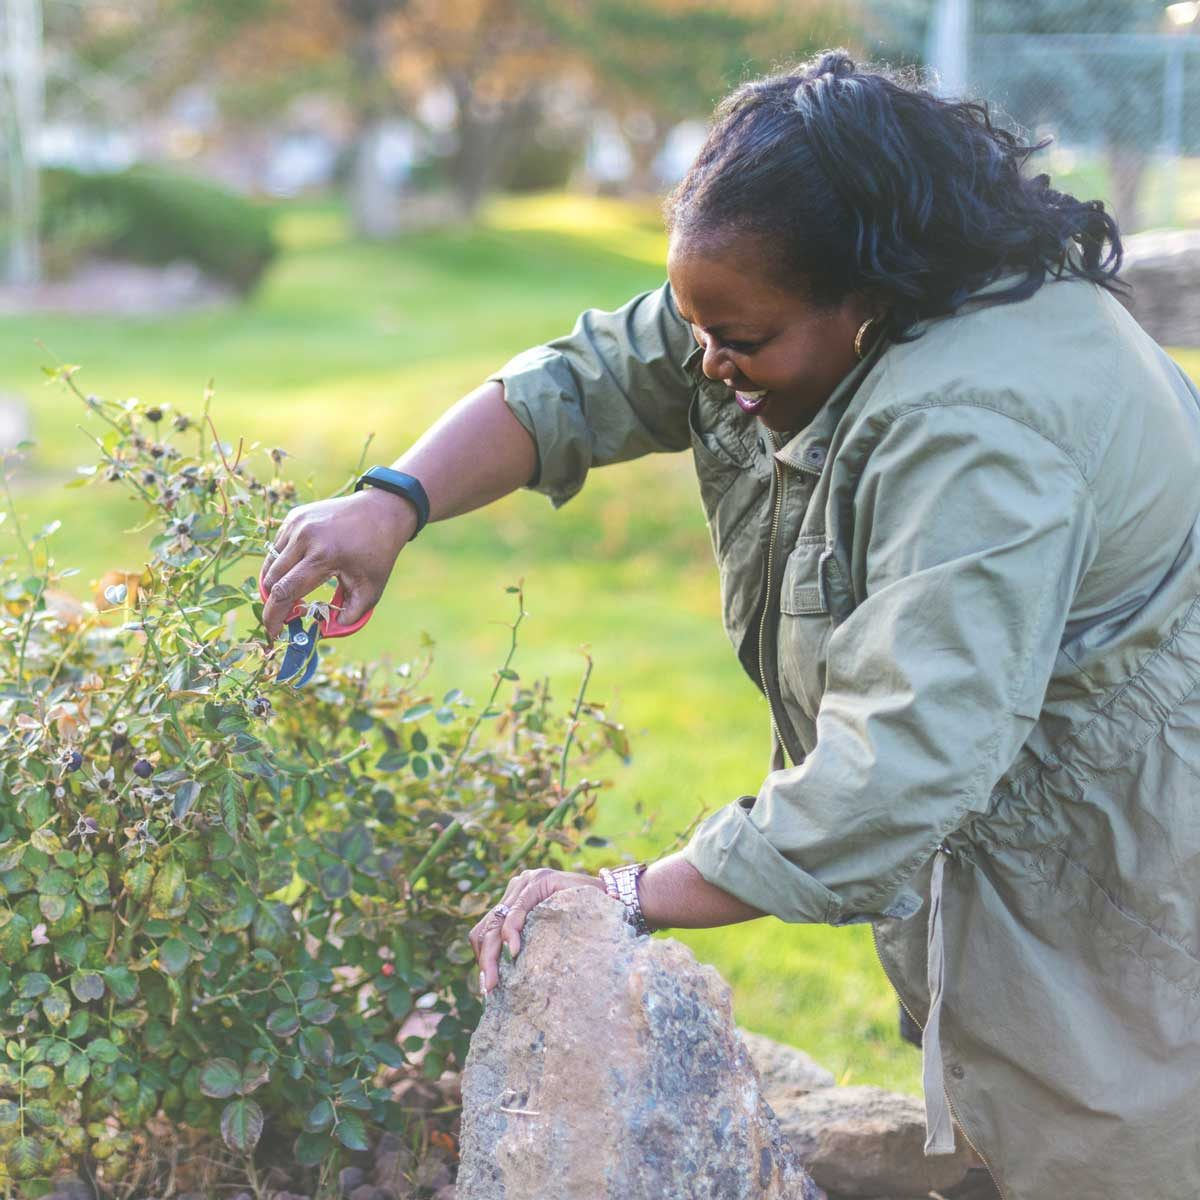 Woman trimming garden in the fall